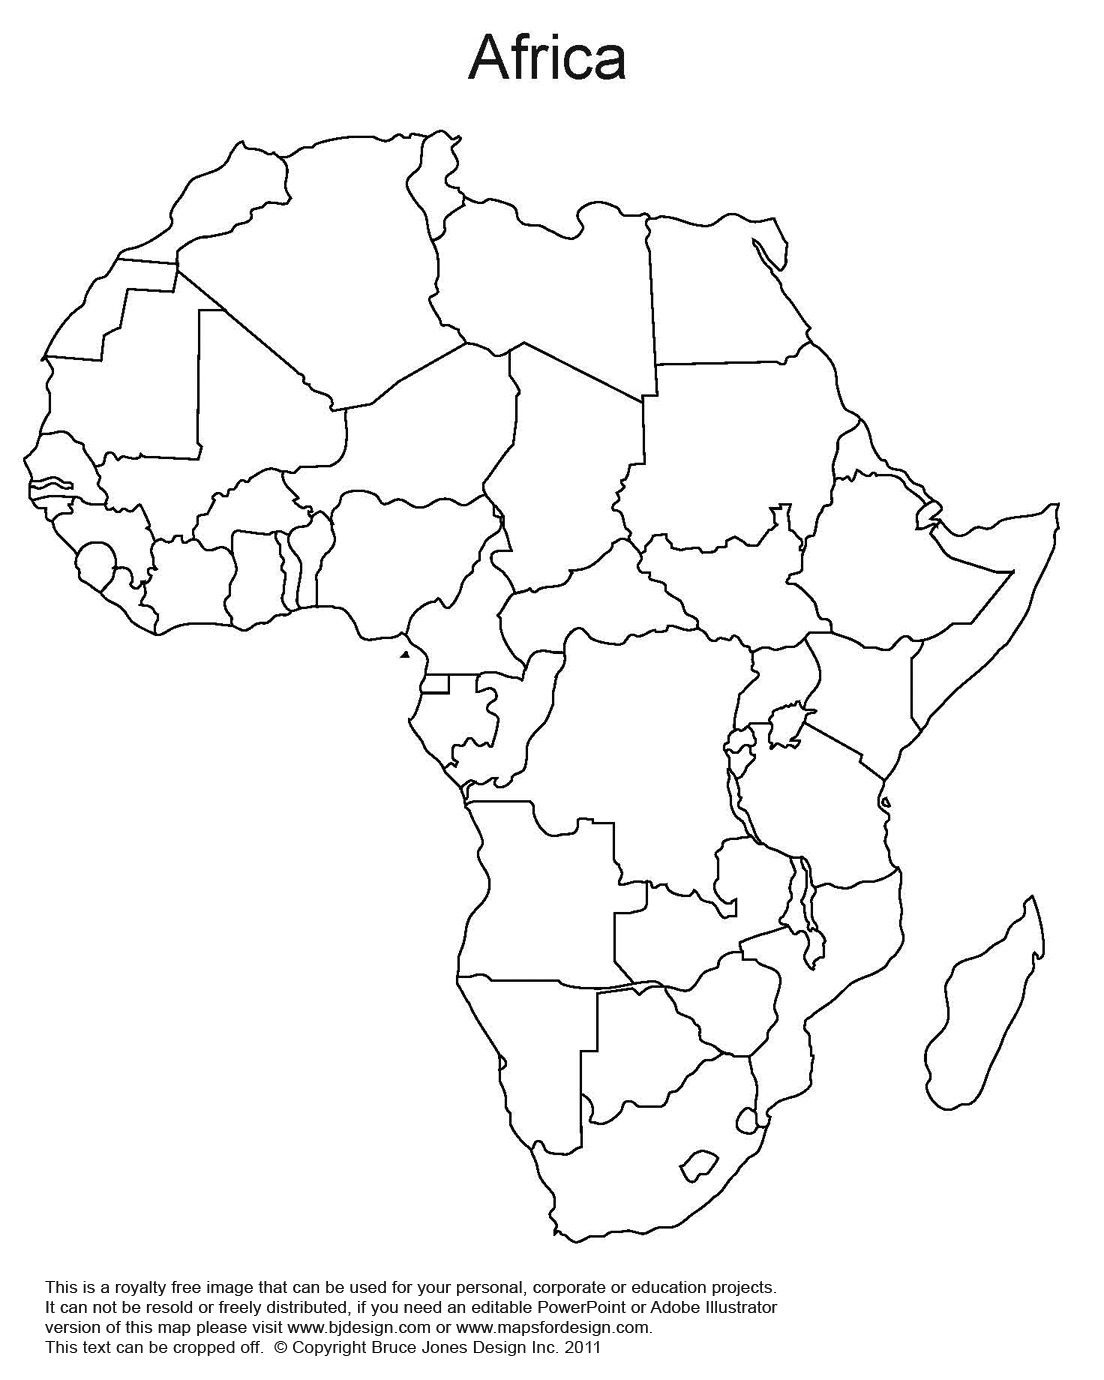 Printable Map Of Africa | Africa World Regional Blank Printable Map - Free Printable Worksheets On Africa